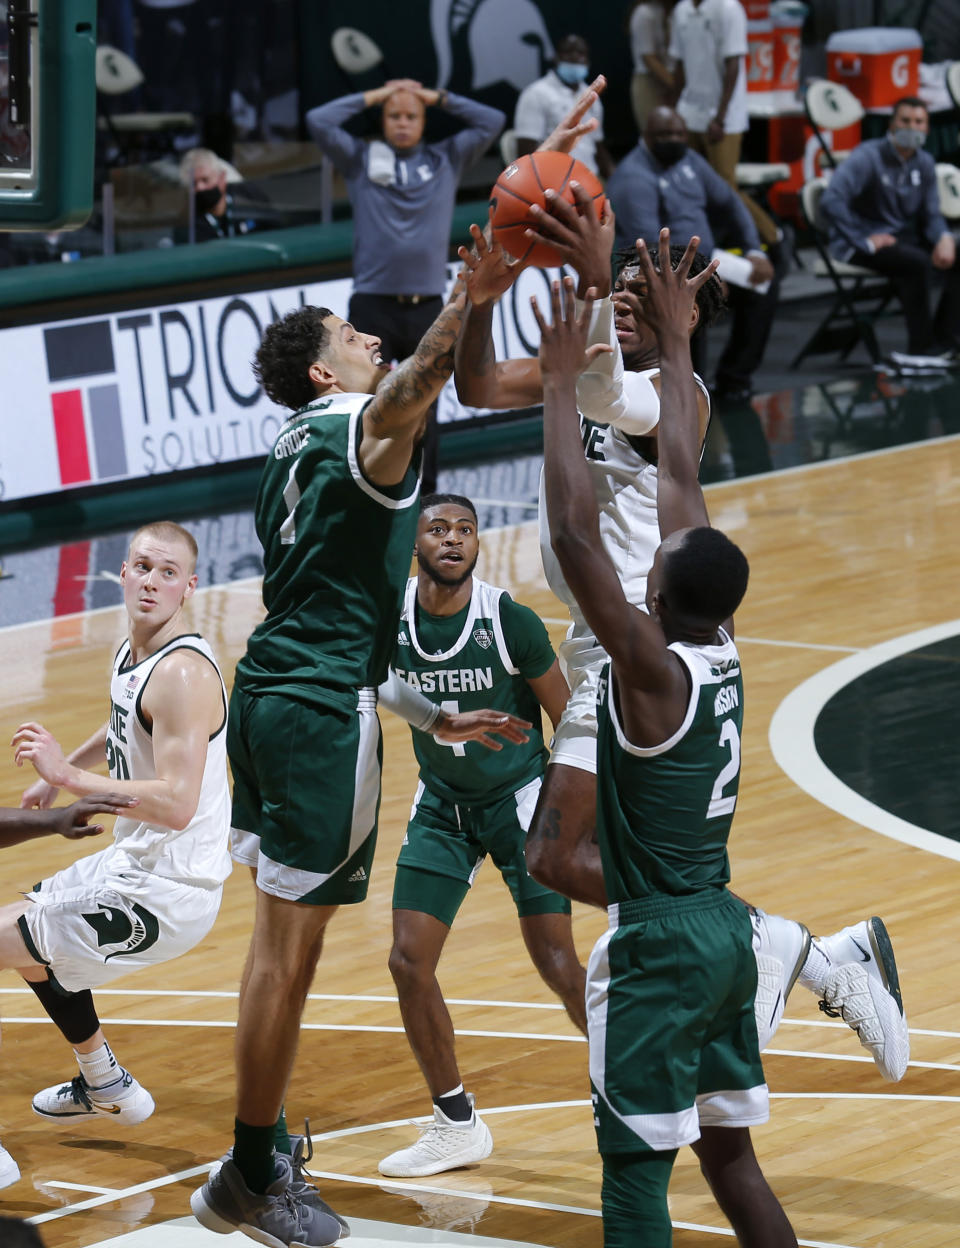 Michigan State's Aaron Henry, right, goes to the basket against Eastern Michigan's Ty Groce, left, and Miles Gibson (2) during the second half of an NCAA college basketball game Wednesday, Nov. 25, 2020, in East Lansing, Mich. Michigan State won 83-67. (AP Photo/Al Goldis)